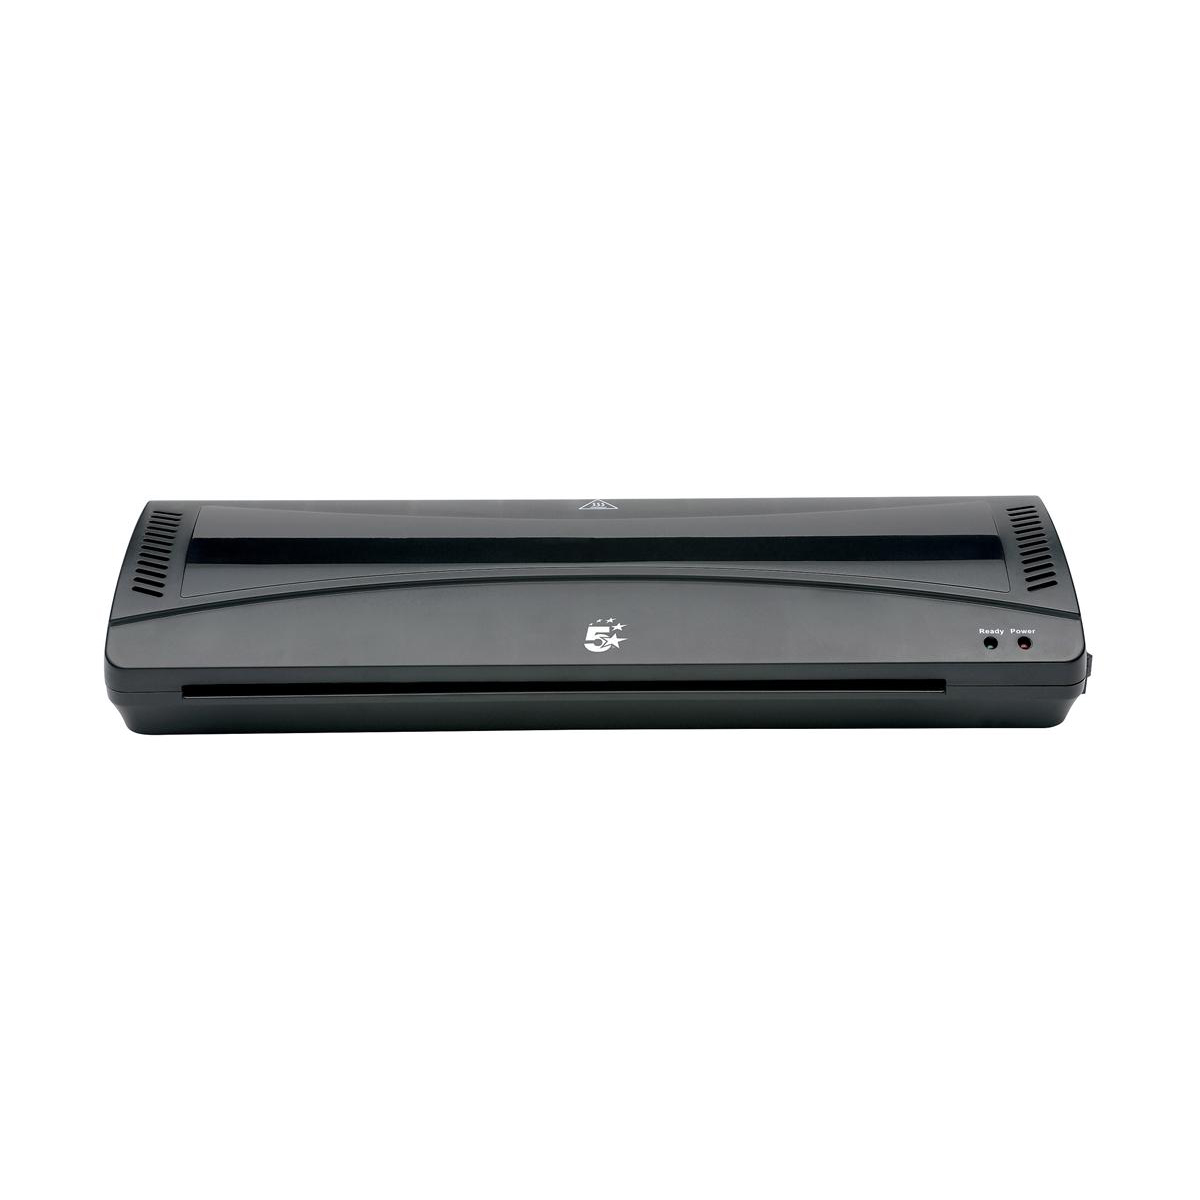 Laminating Machines 5 Star Office Hot and Cold A3 Laminator Up to 2x100micron Pouches